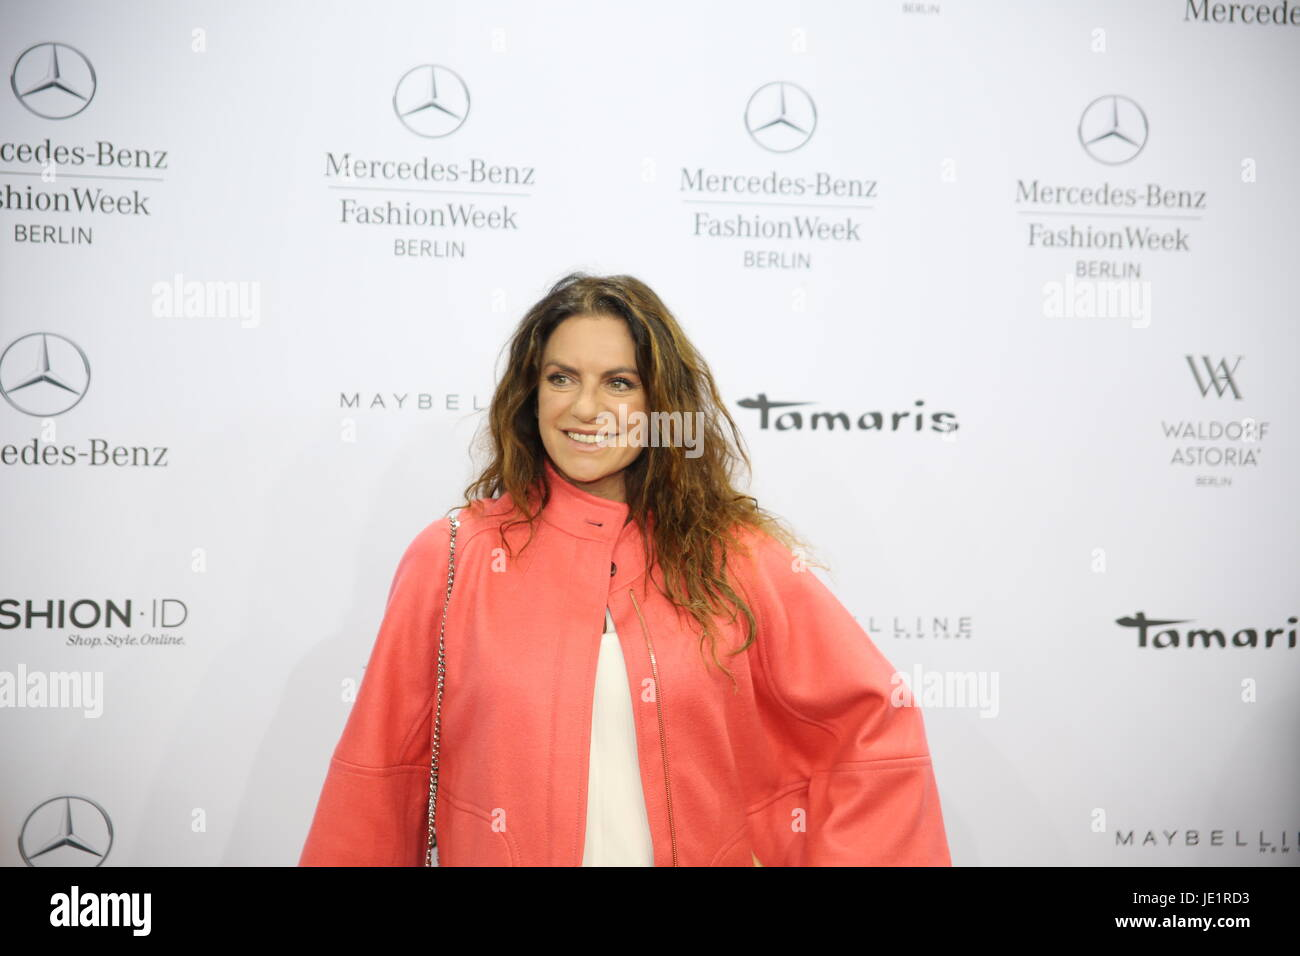 Bambi 2015 Roter Teppich Fotos Christine Neubauer Mercedes Benz Fashion Week Stockfotos